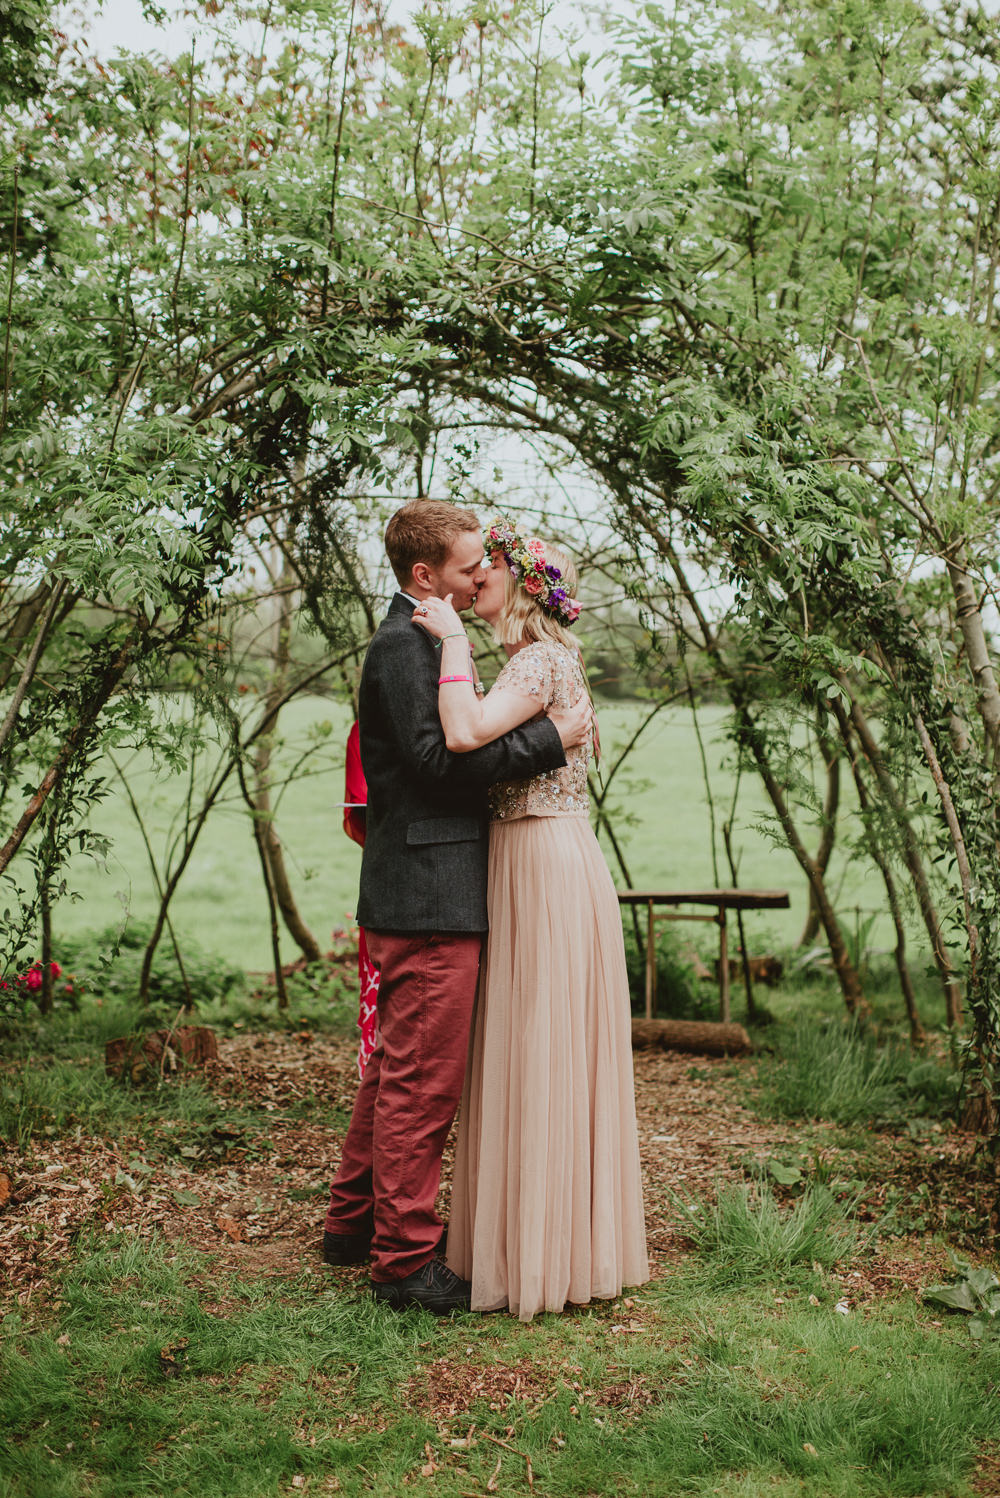 Ceremony Backdrop Willow Hazel Greenery Branches Outdoor Plush Tents Glamping Wedding Big Bouquet Photography